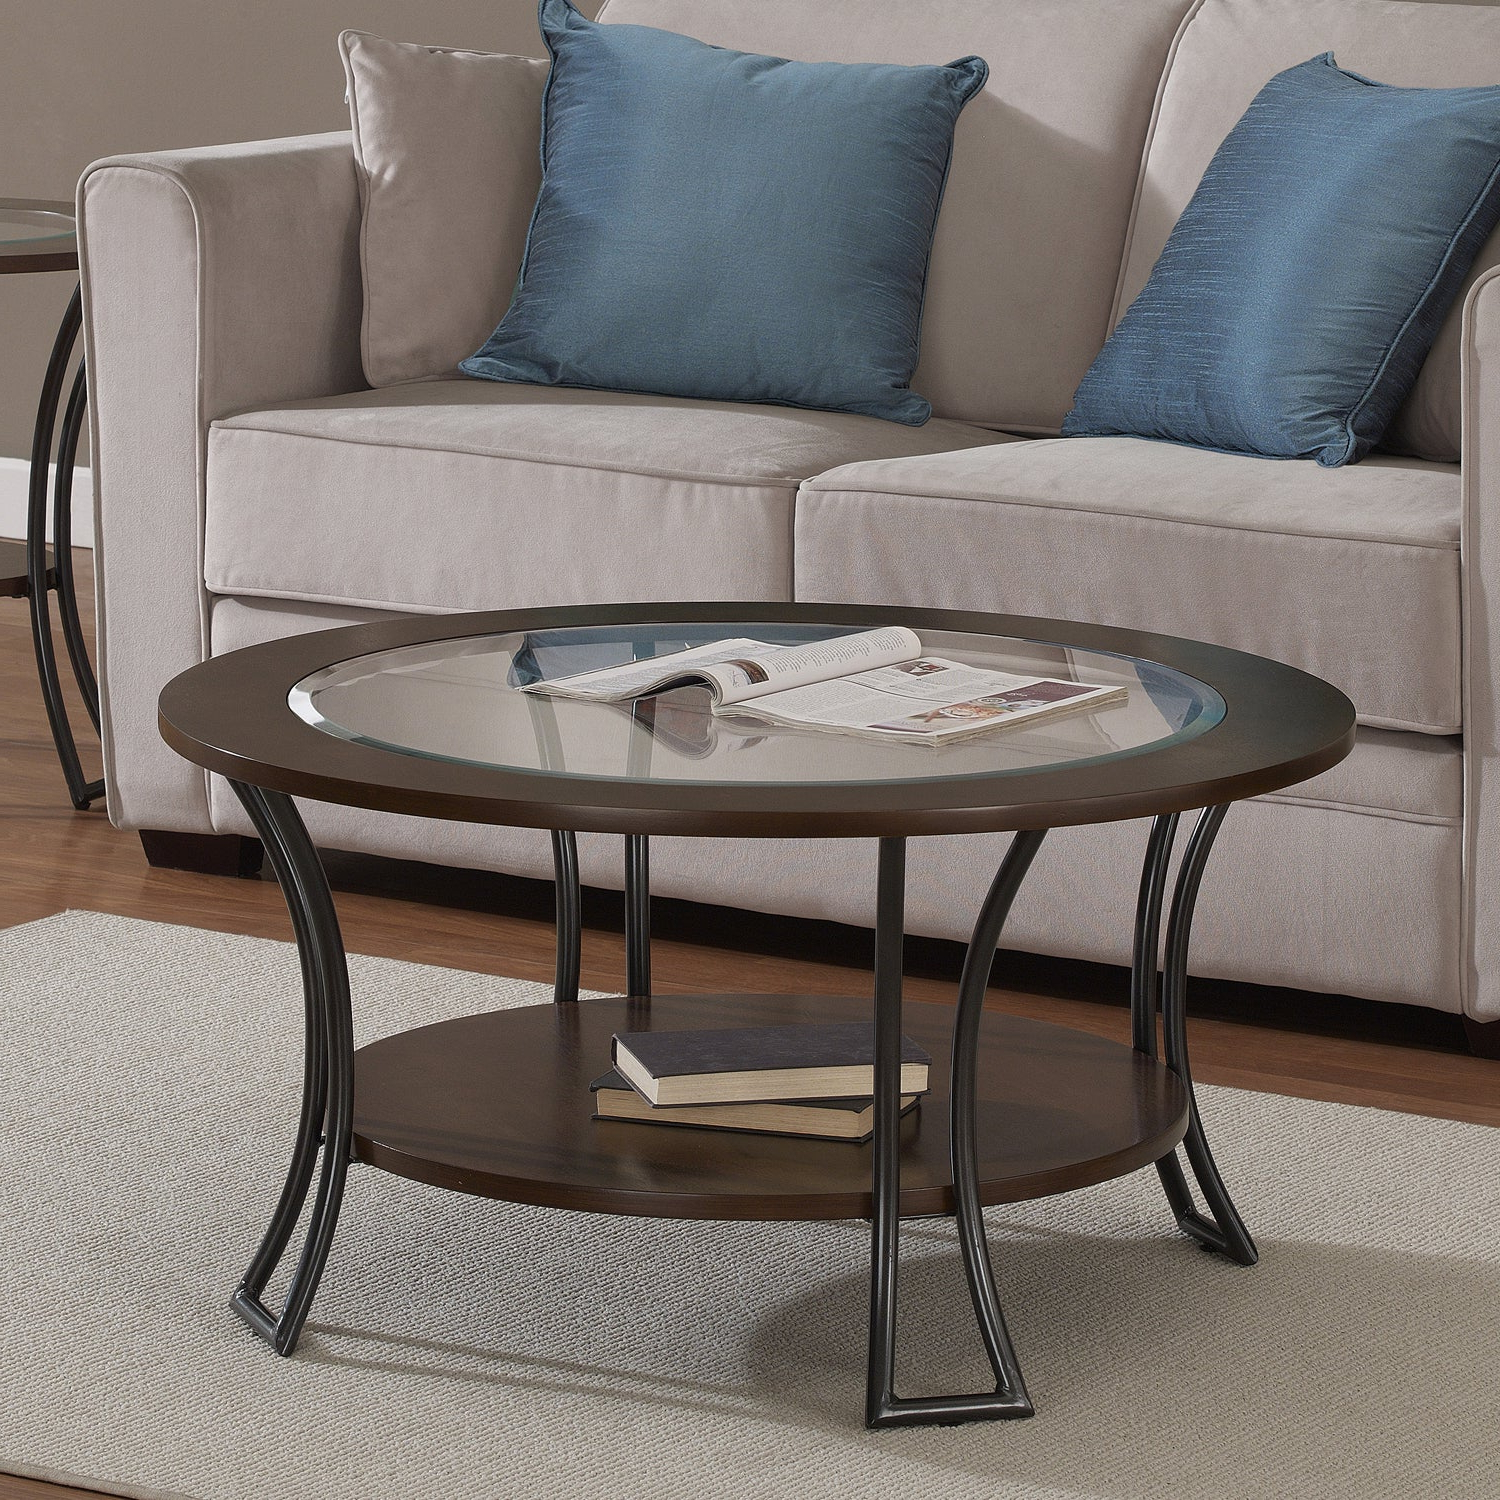 Well Known Copper Grove Halesia Chocolate Bronze Round Coffee Tables Intended For Copper Grove Carlisle Walnut/ Charcoal Grey Round Coffee Table (View 15 of 20)